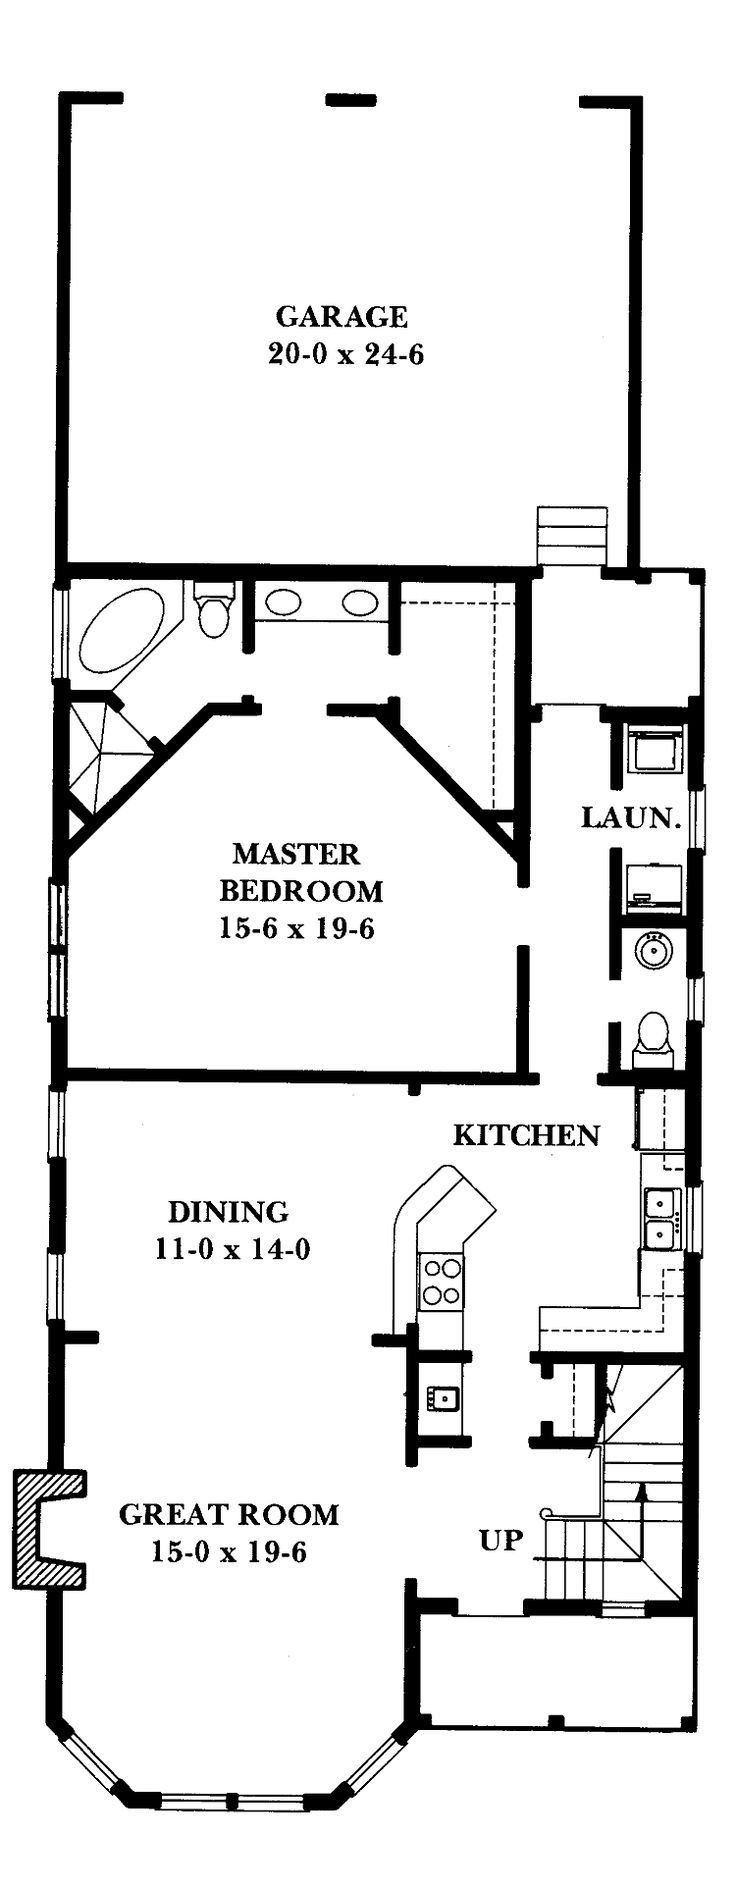 Groovy 17 Best Ideas About Shop House Plans On Pinterest Metal House Largest Home Design Picture Inspirations Pitcheantrous